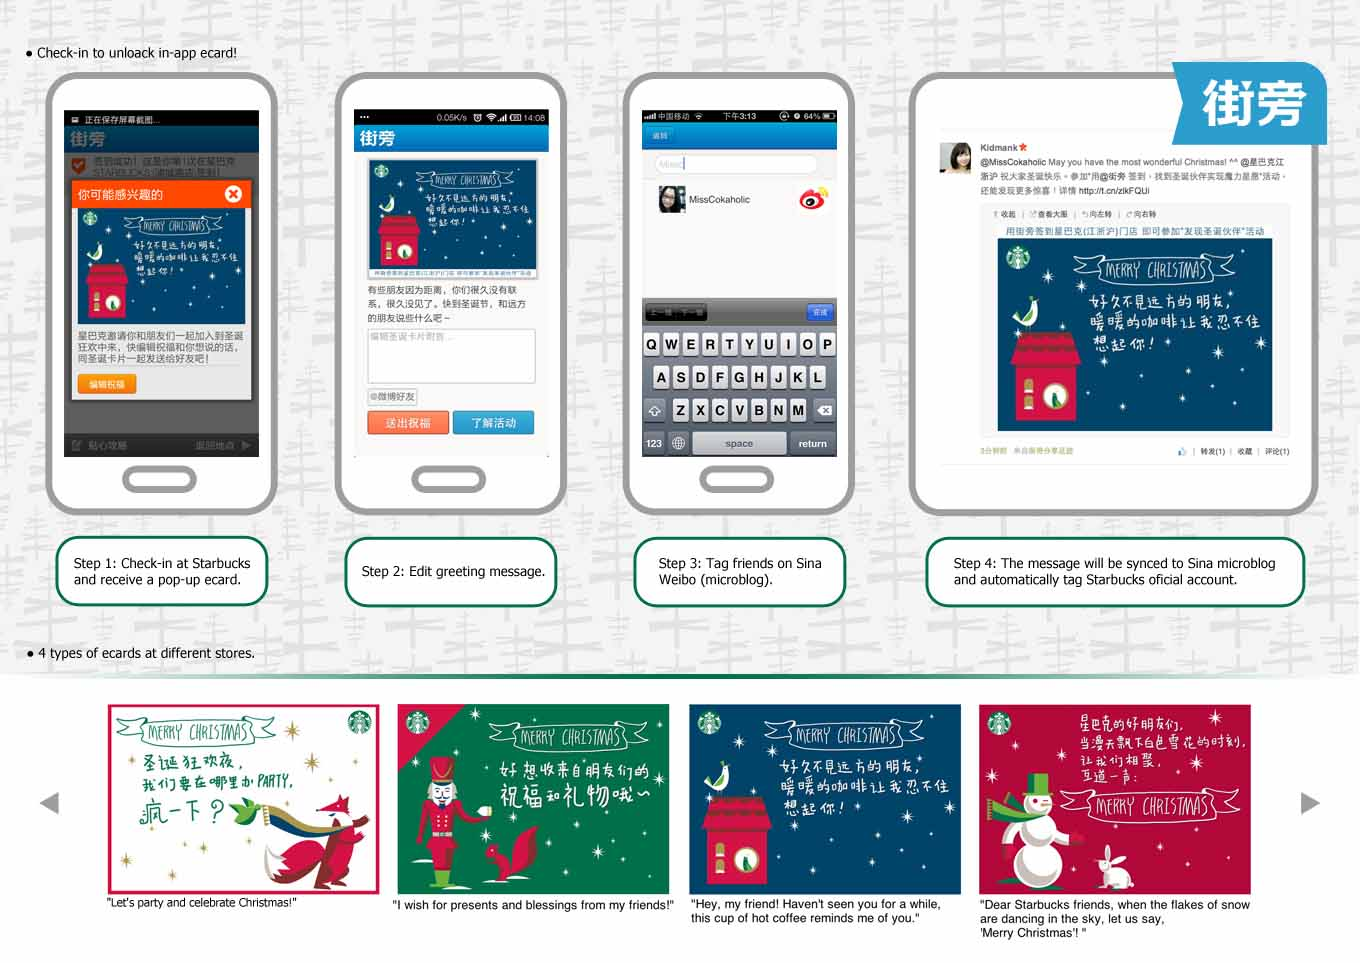 Jiepang provides e-cards on Sina Weibo for Starbucks Christmas promotion